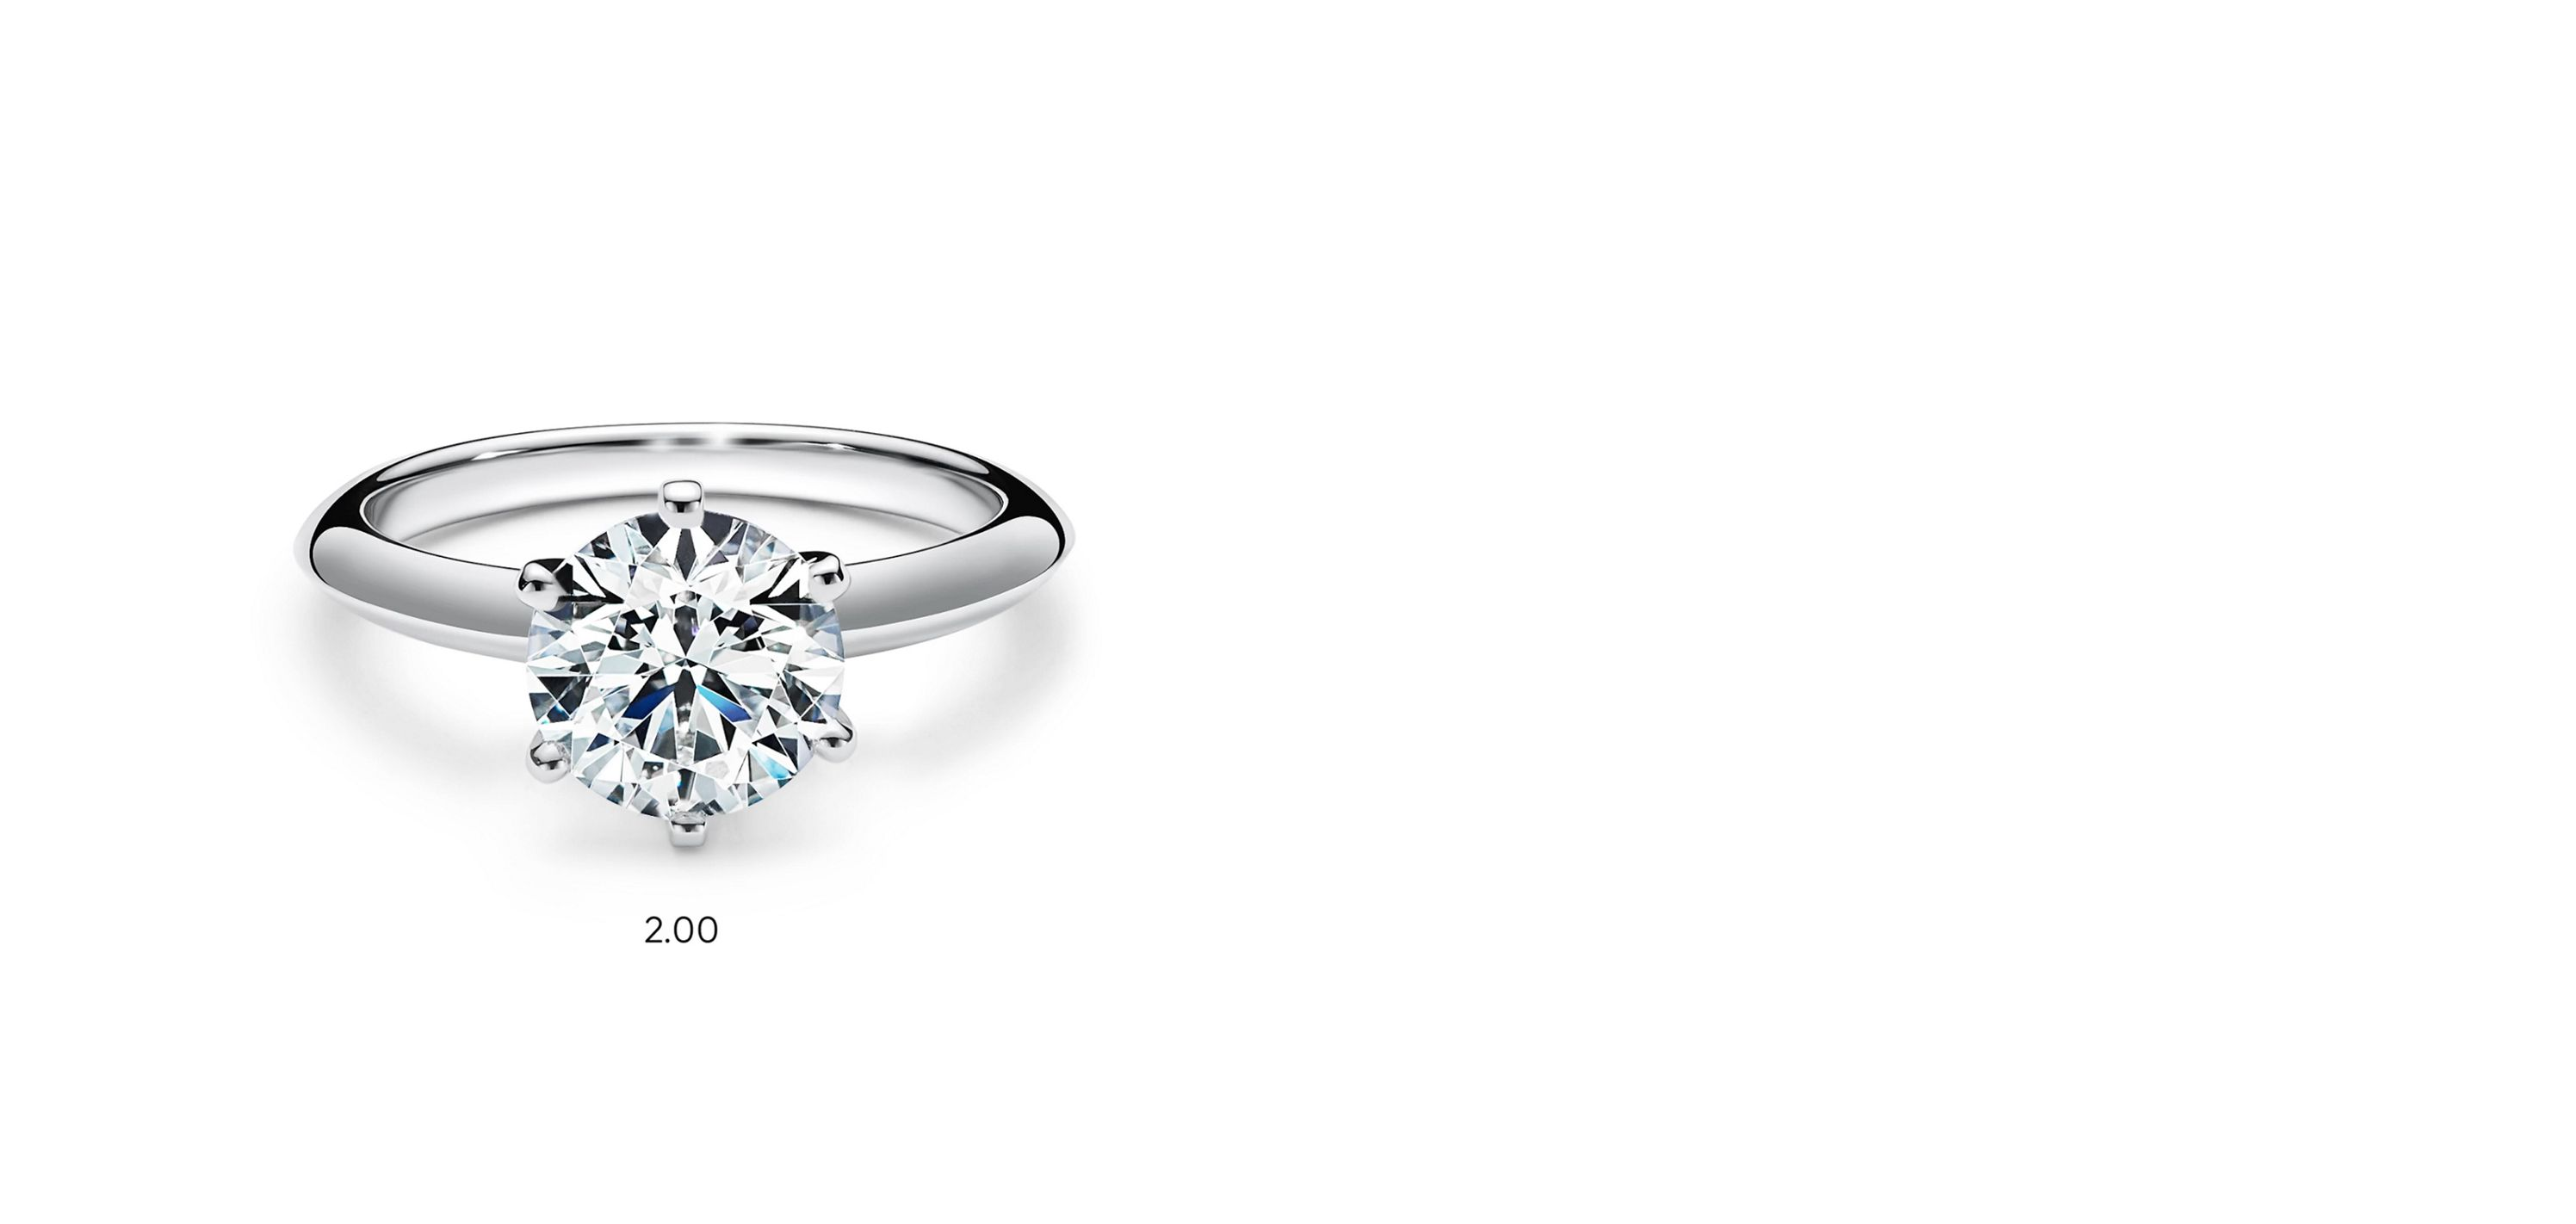 7f90dedaf3 The Guide to Diamonds | Tiffany & Co.